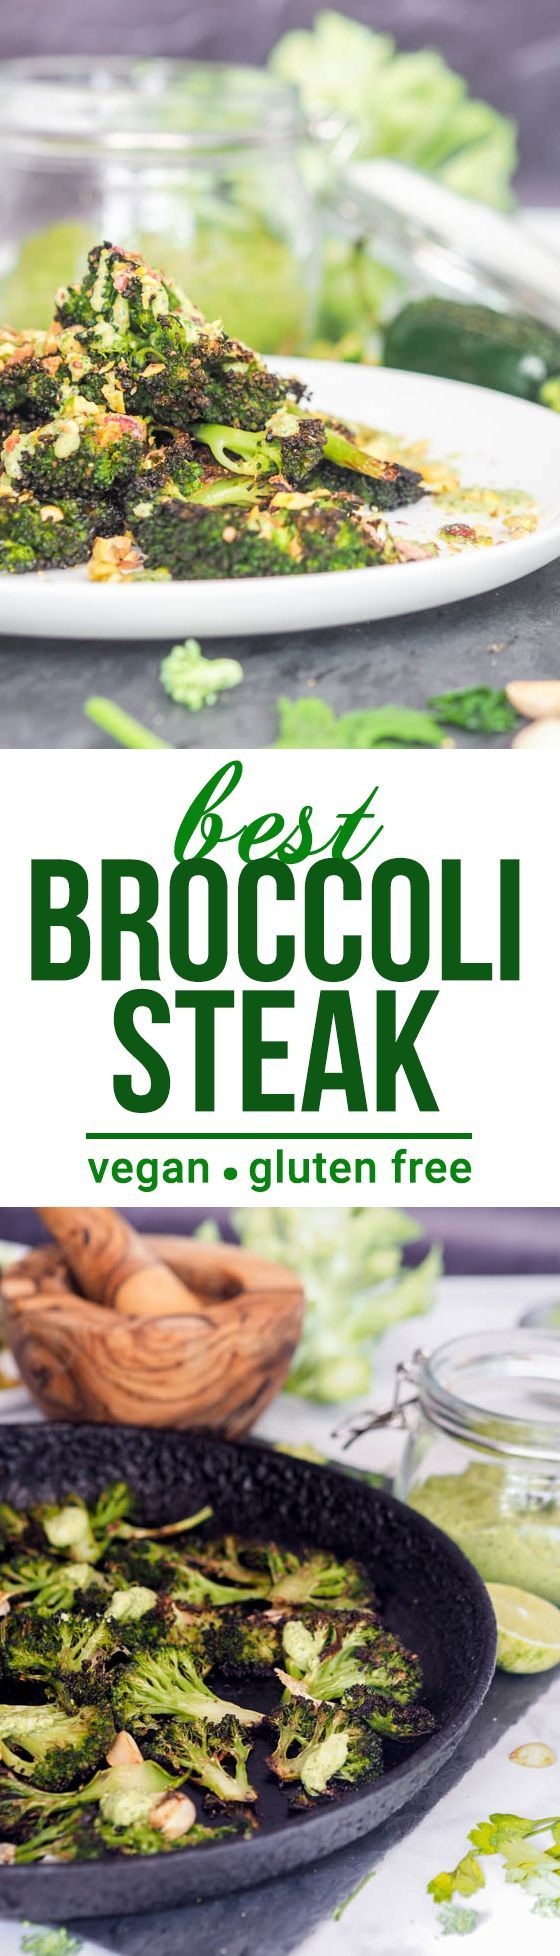 I know you�re going to love these broccoli steaks with cilantro jalapeno pistachio pesto. It�s always better to be incorporating more veggies into your diet and this is an excellent way to sneak some more in while making sure they really shine on your pla